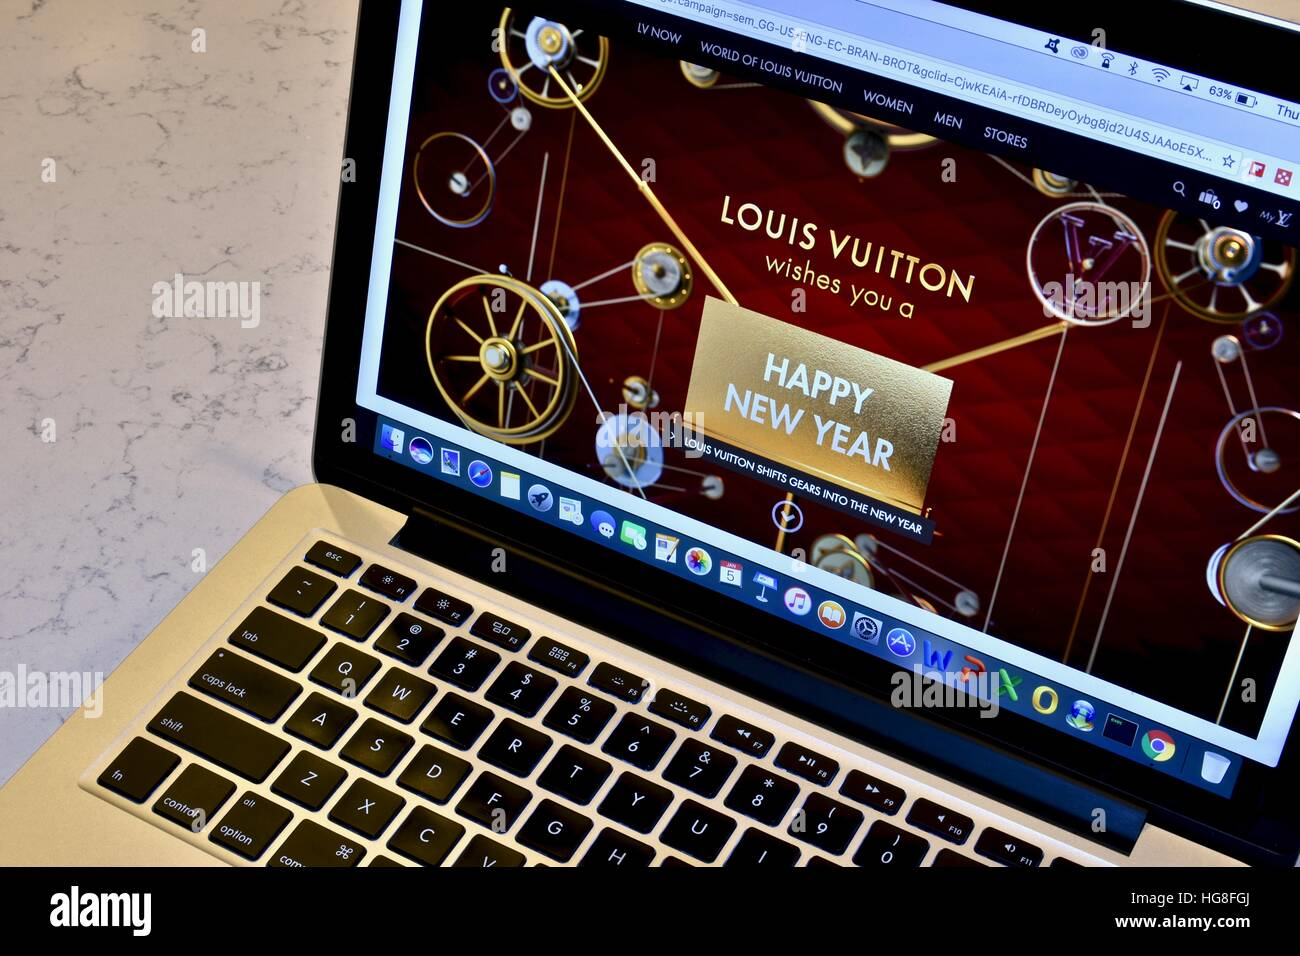 71082cac56c3 The Louis Vuitton website displayed on an Apple Macbook Pro Stock ...